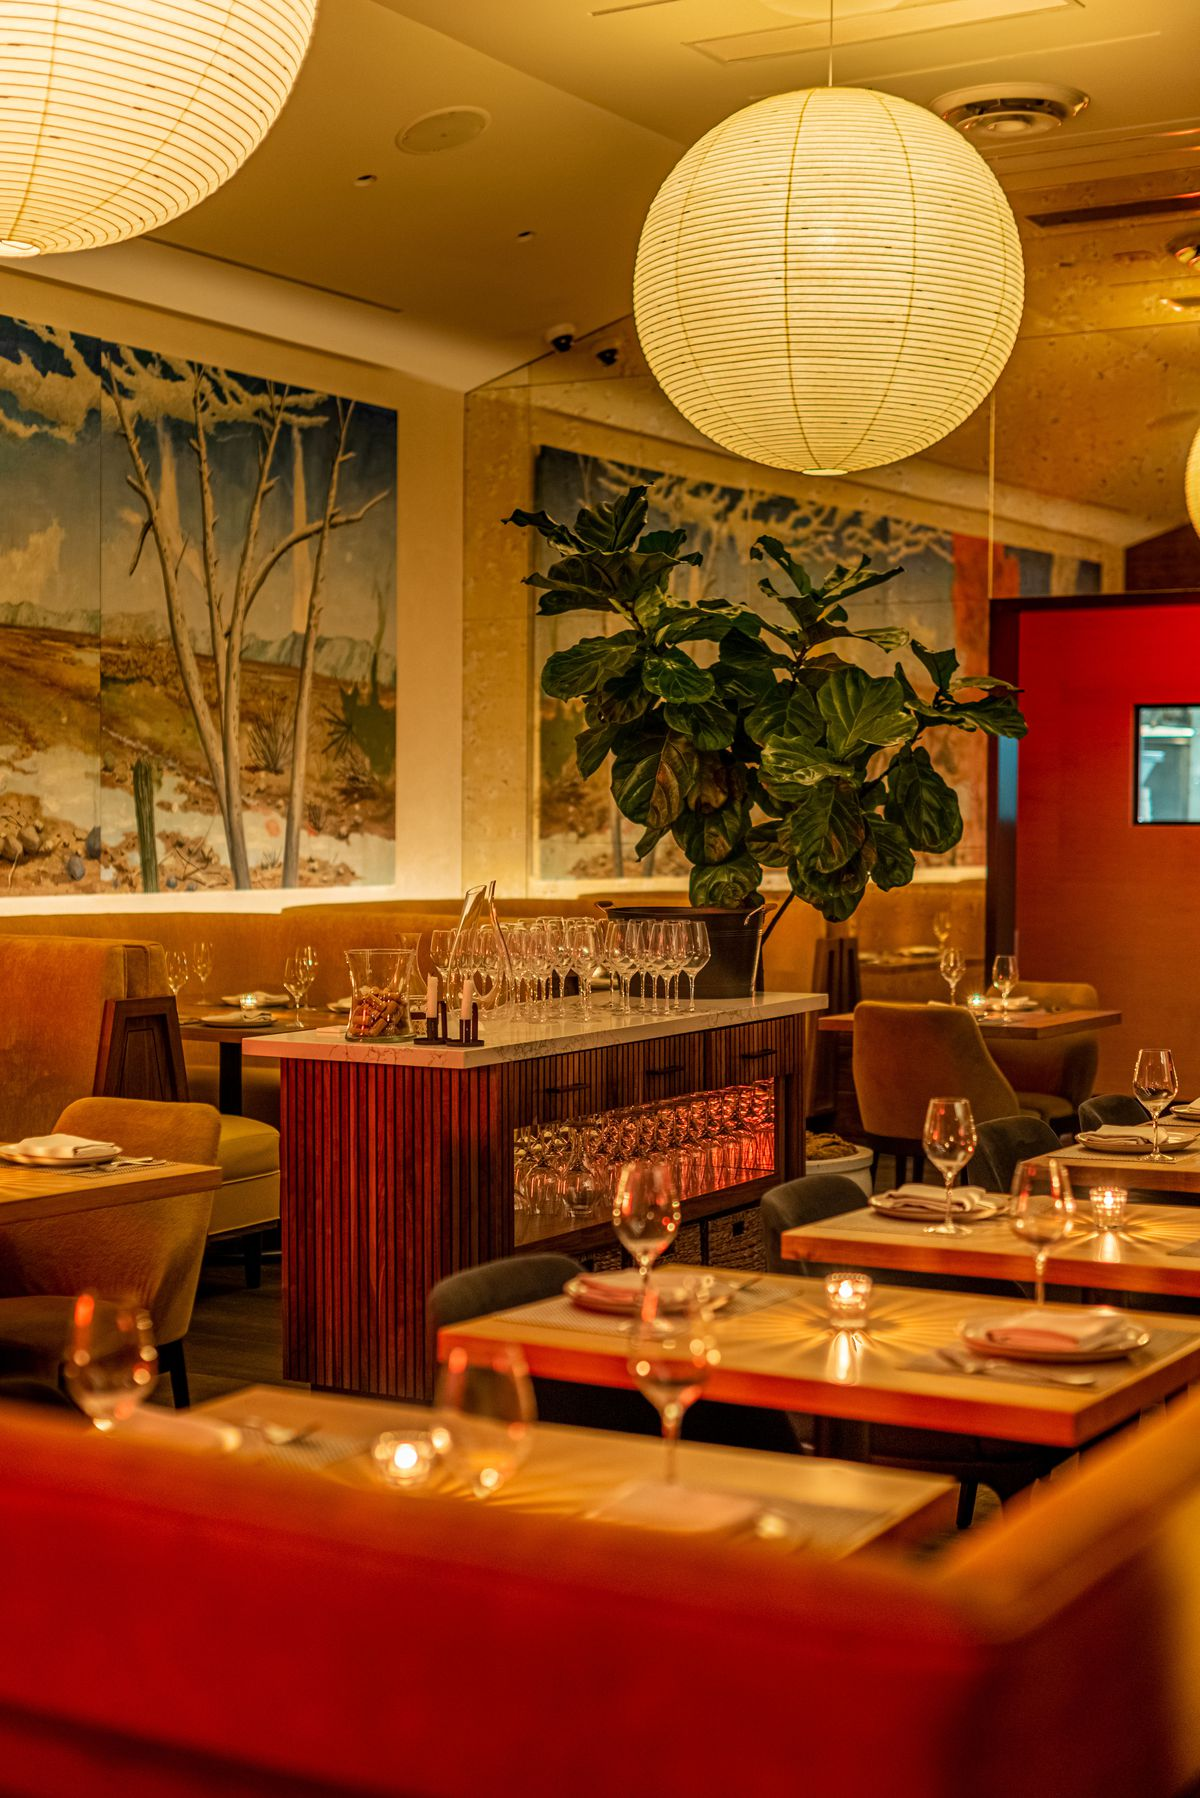 Colorful wallpaper showing a woodsy scene with bulbous lights overhead in a new restaurant, at night.